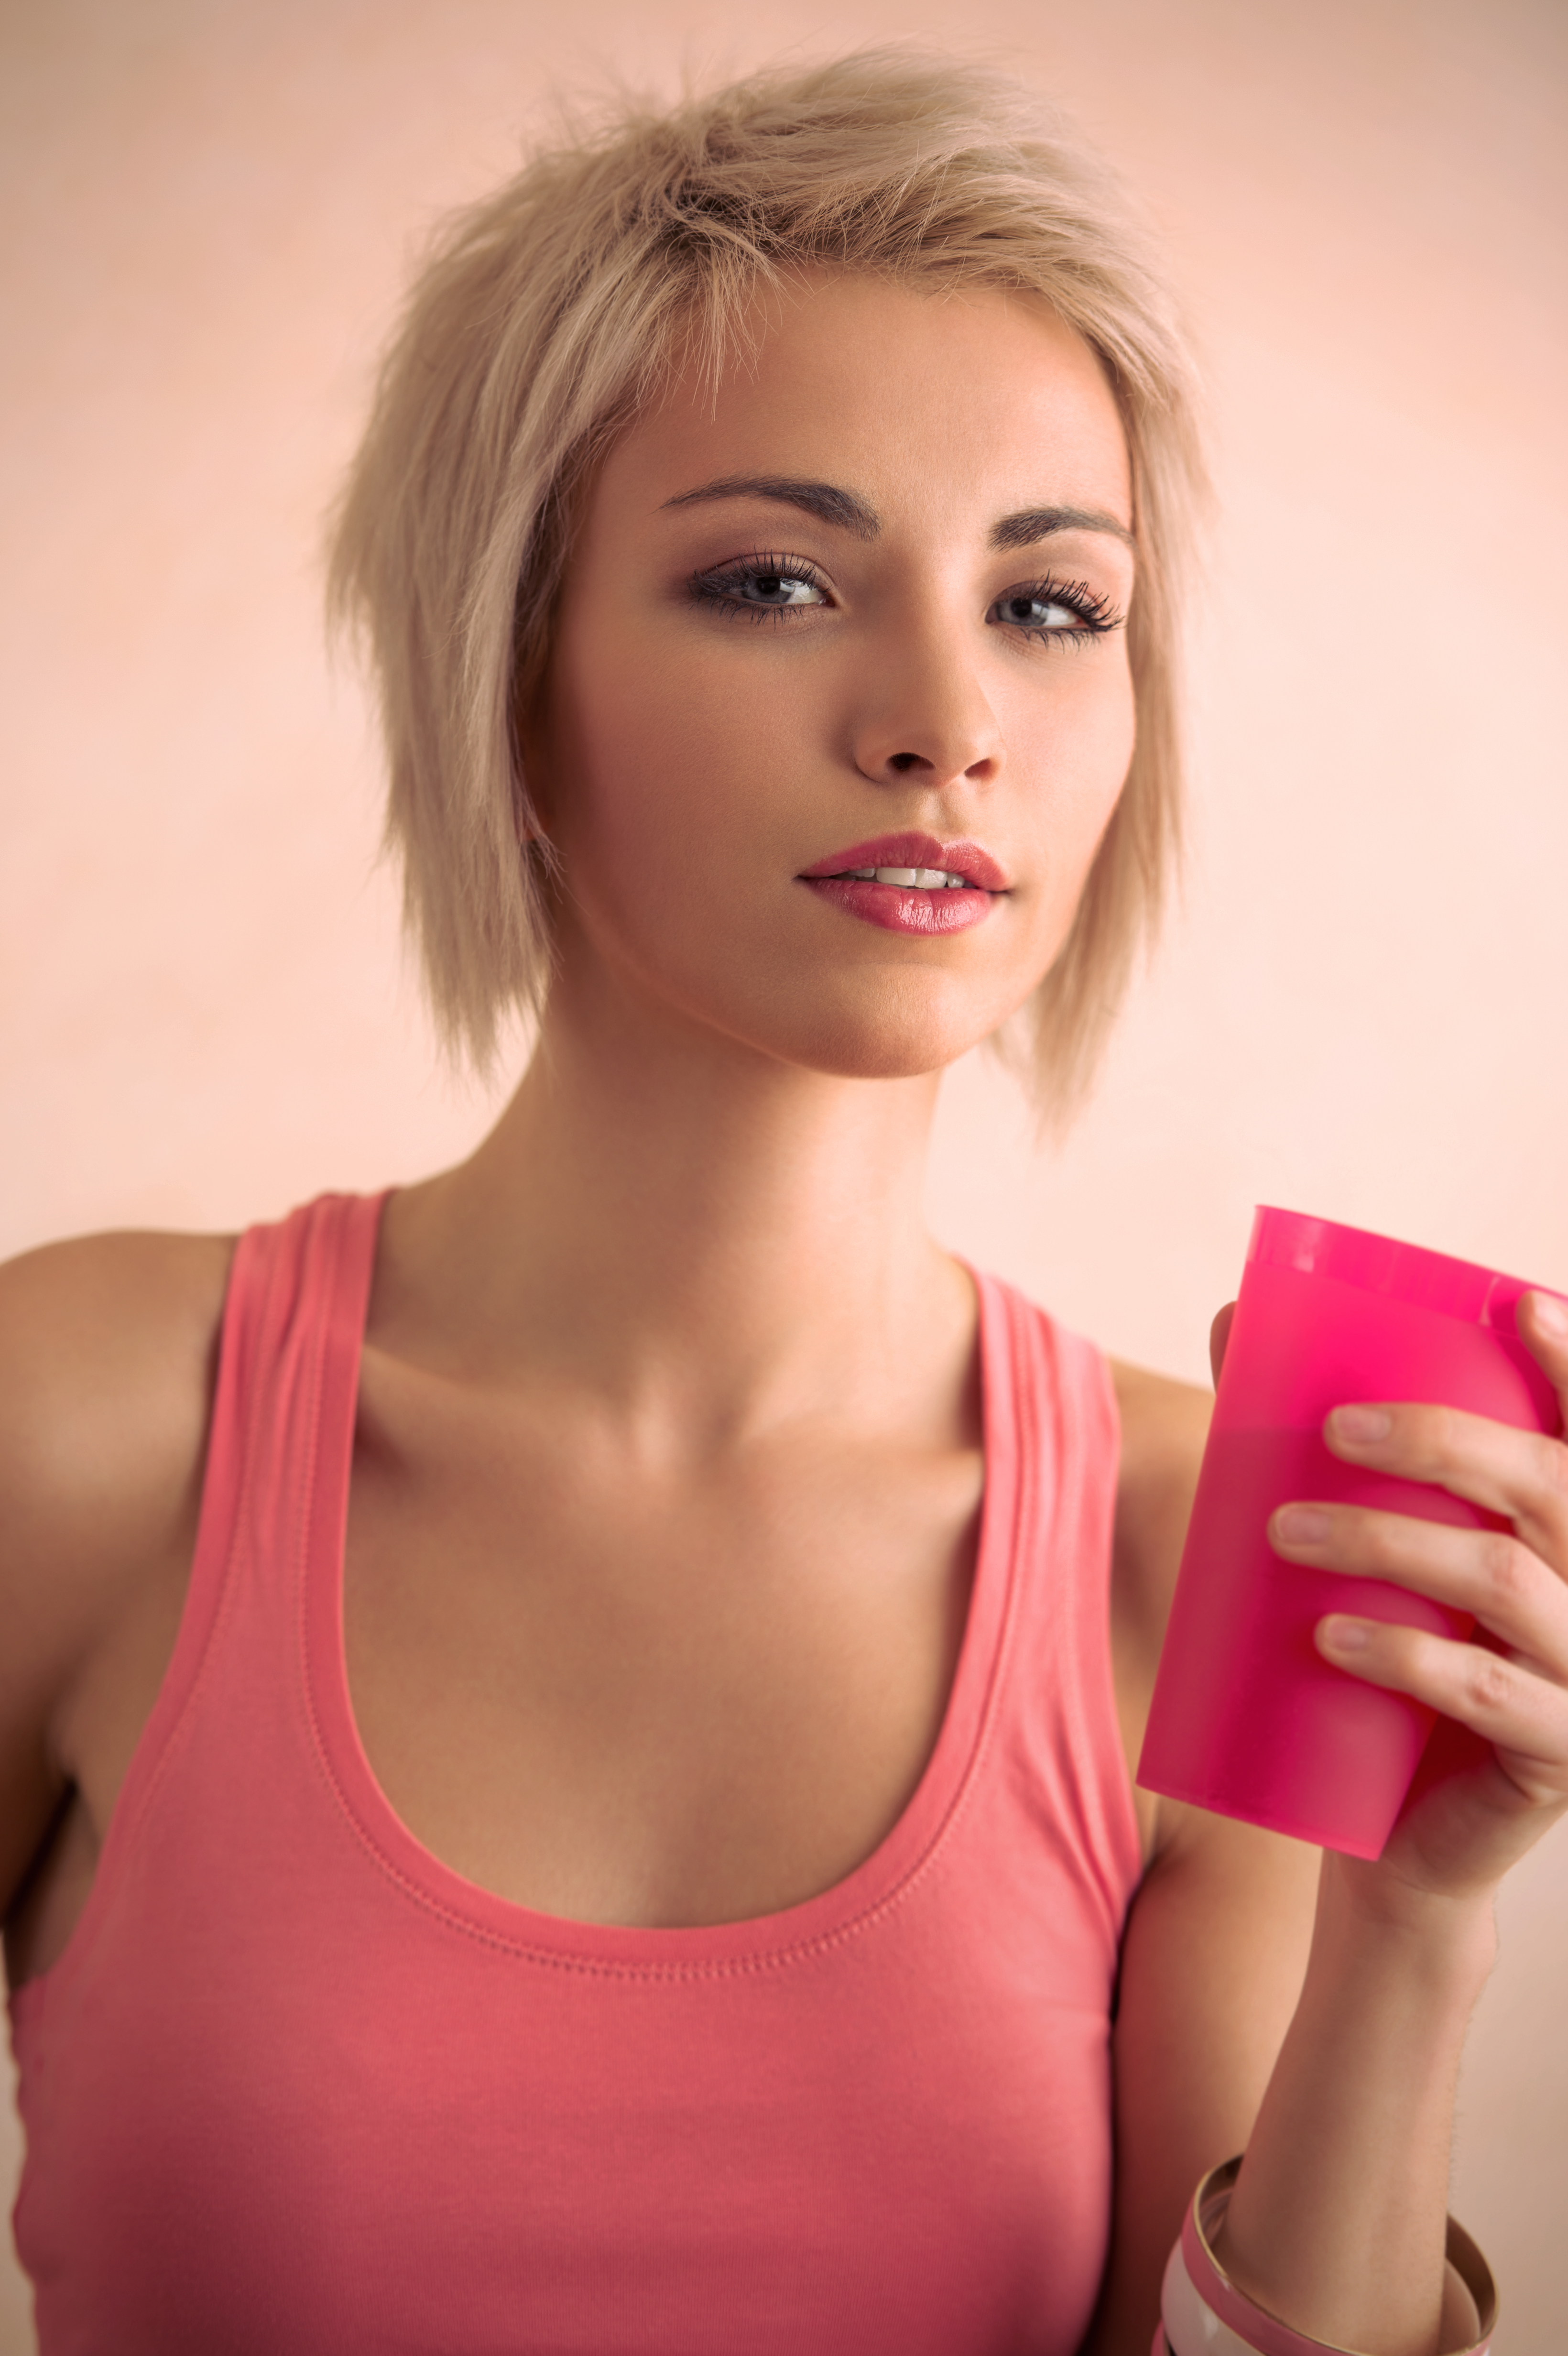 Hot blond girl with short hair holding plastic cup and looking at camera